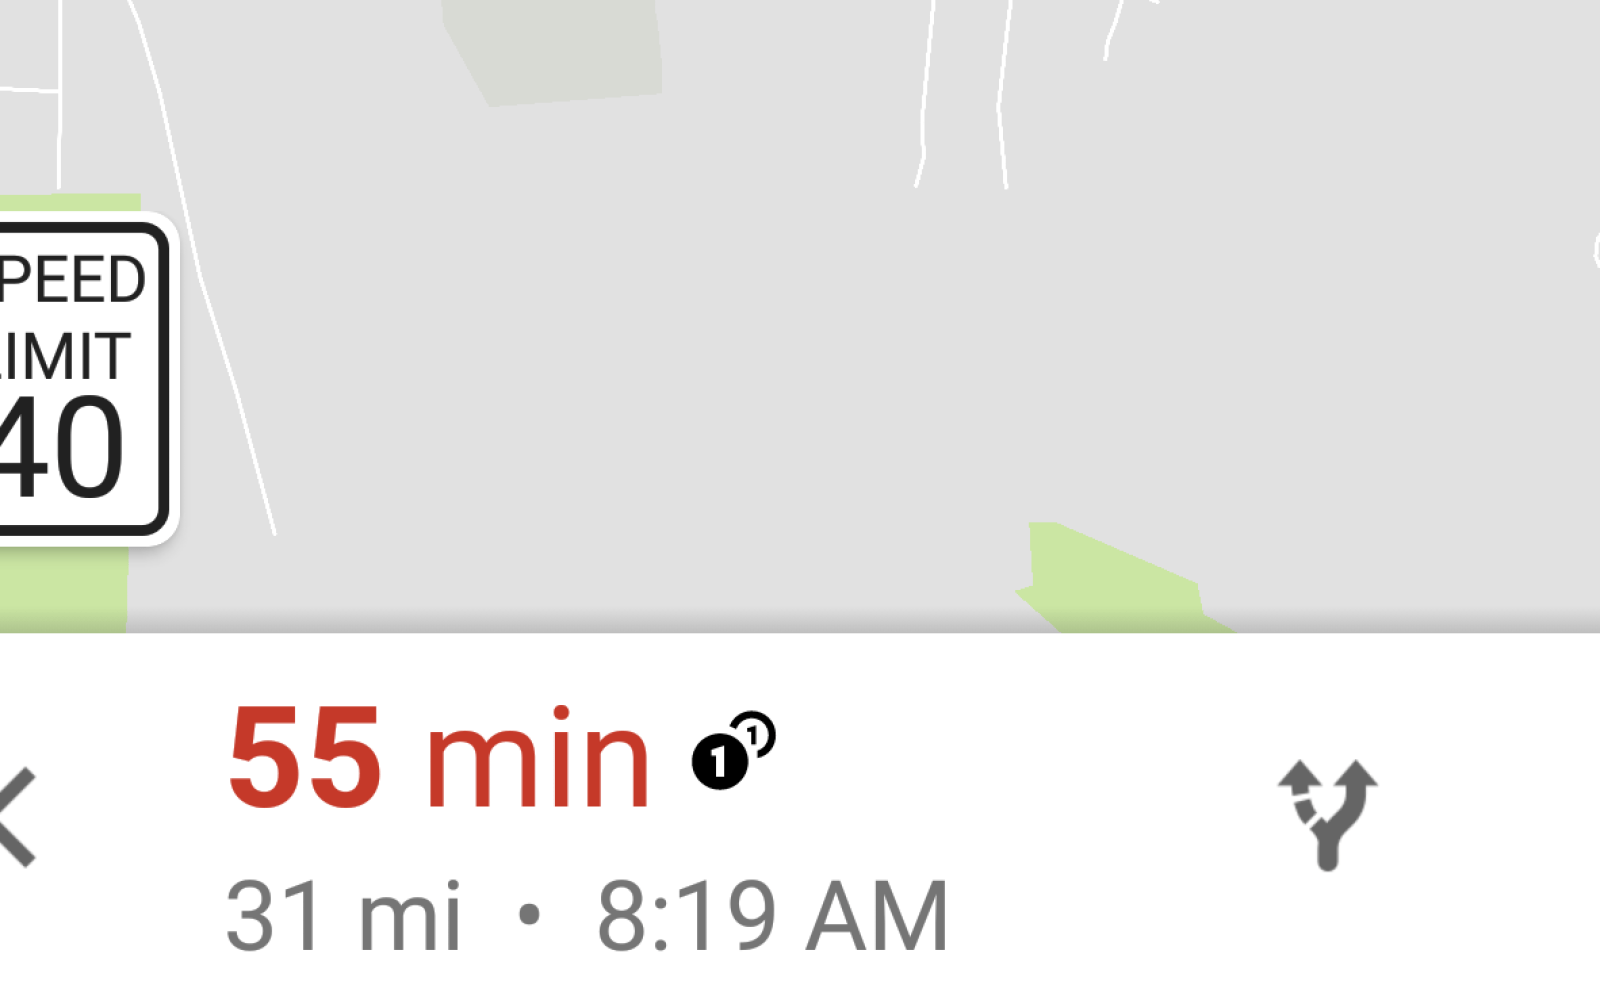 Speed limit signs are now showing for some in Google Maps